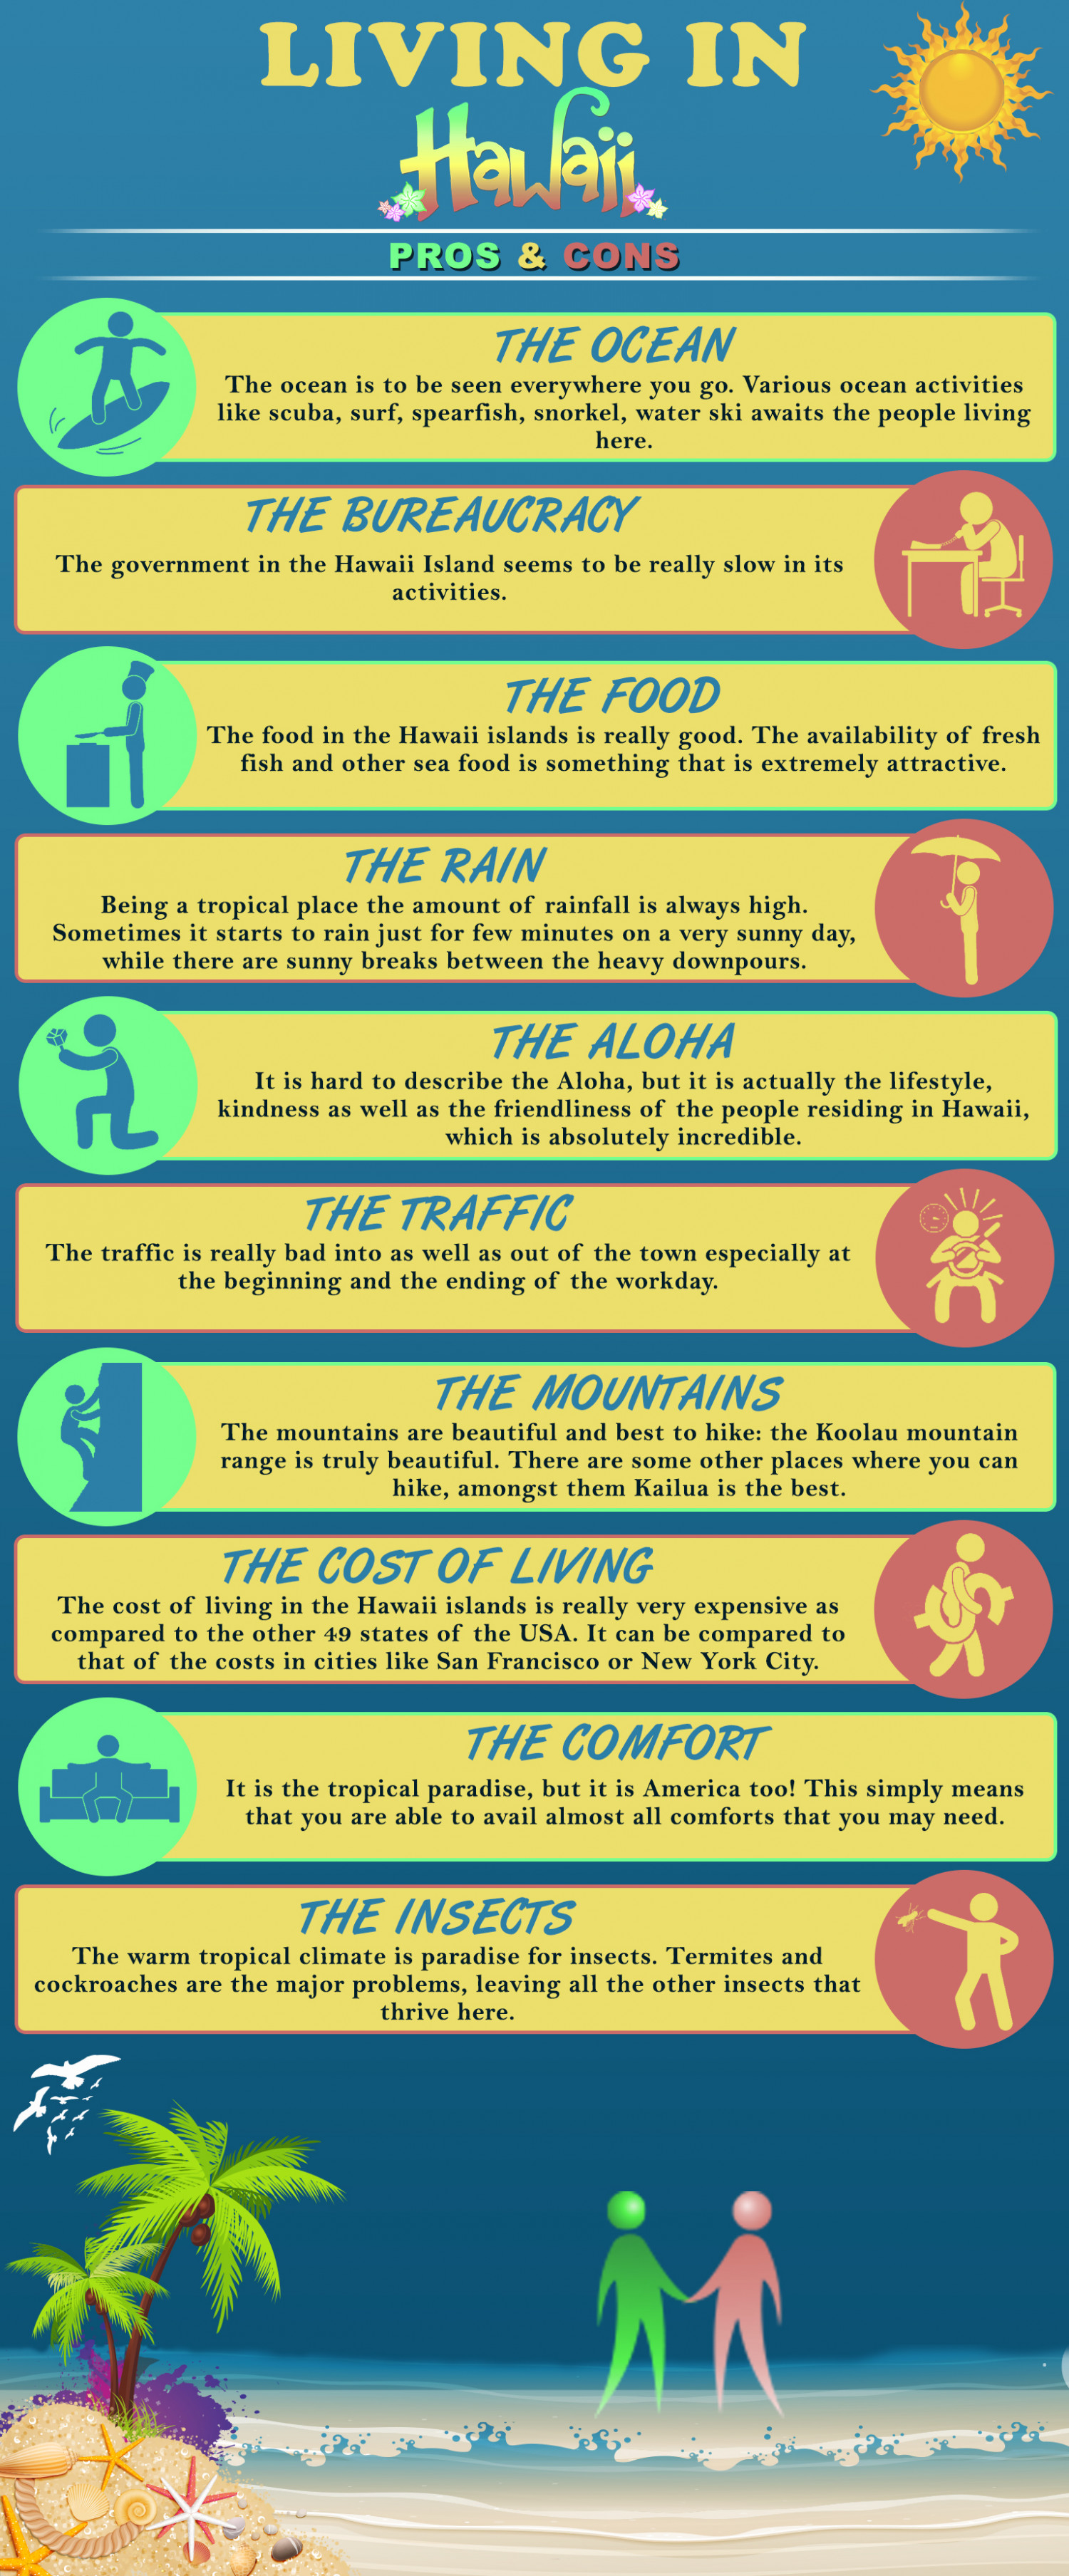 Living In Hawaii: Pros & Cons Infographic